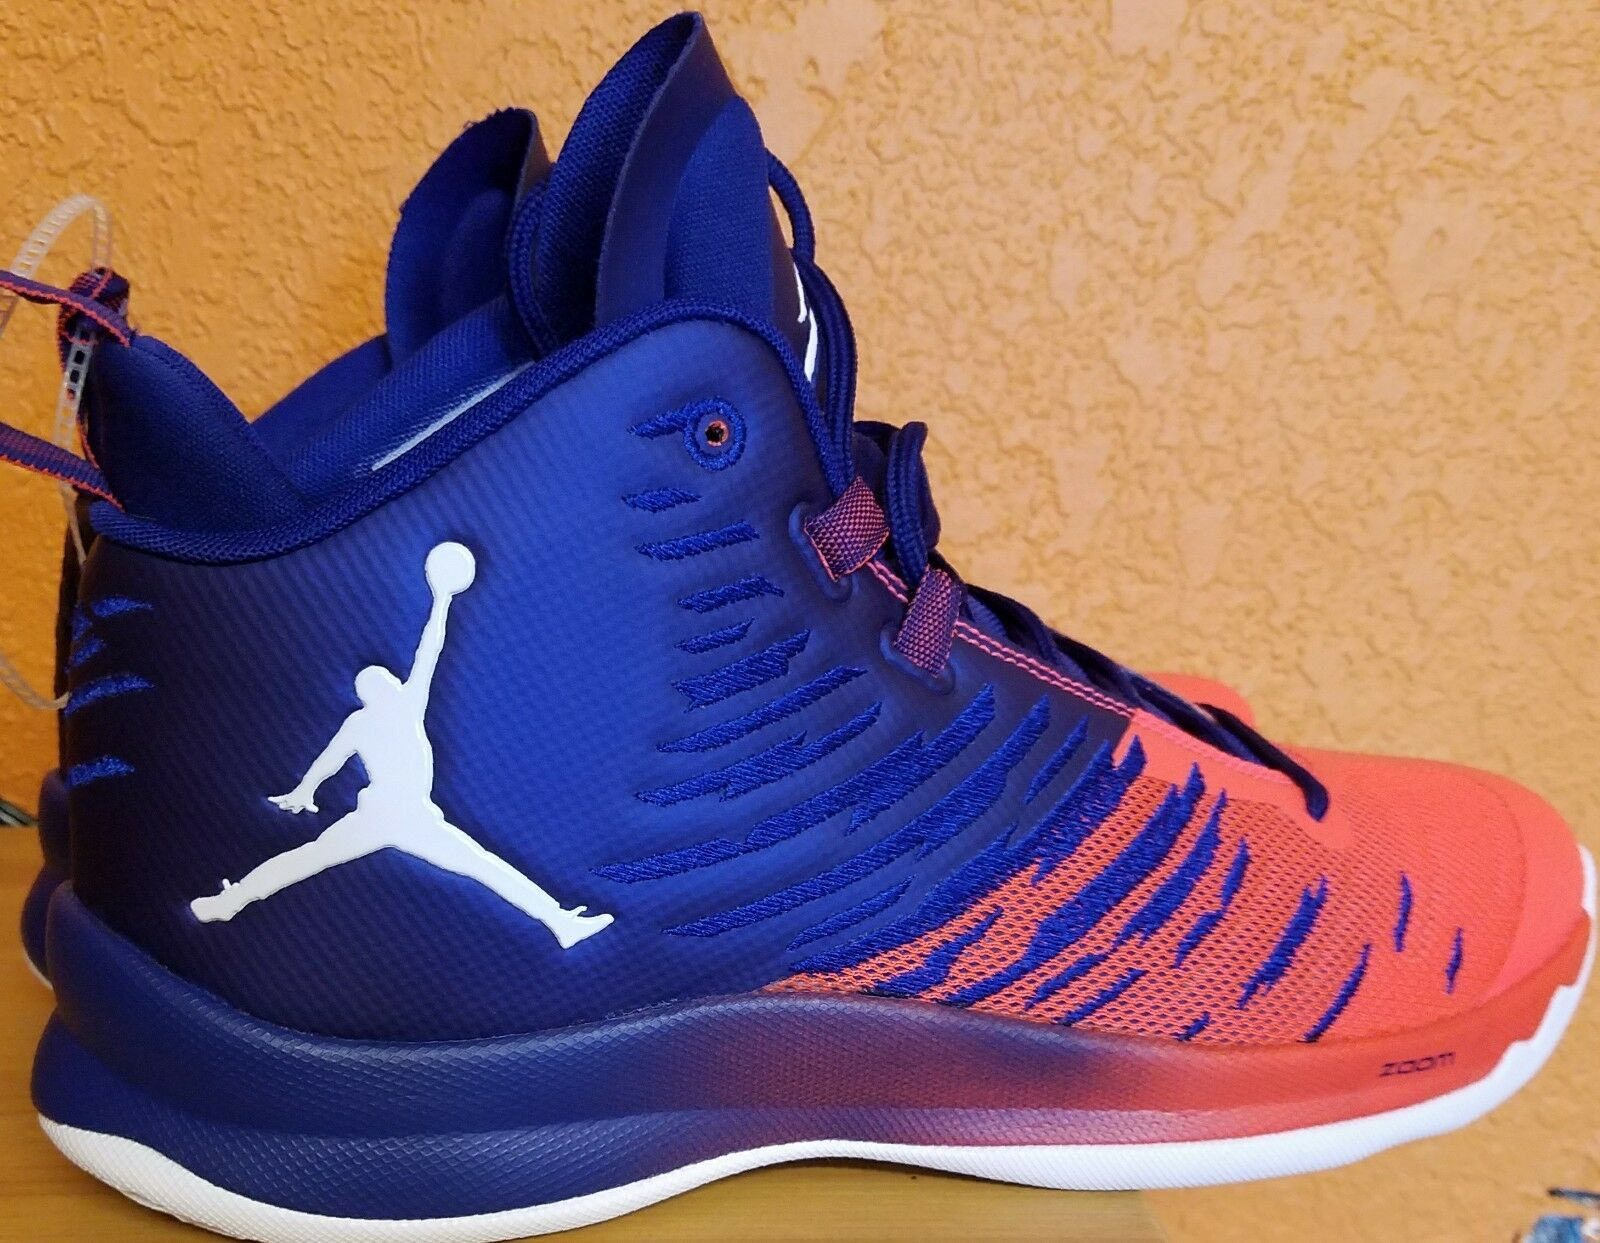 Nike Air Jordans Super Fly 5 Royal blueee Infrared 23 Blake Griffin100%authentic